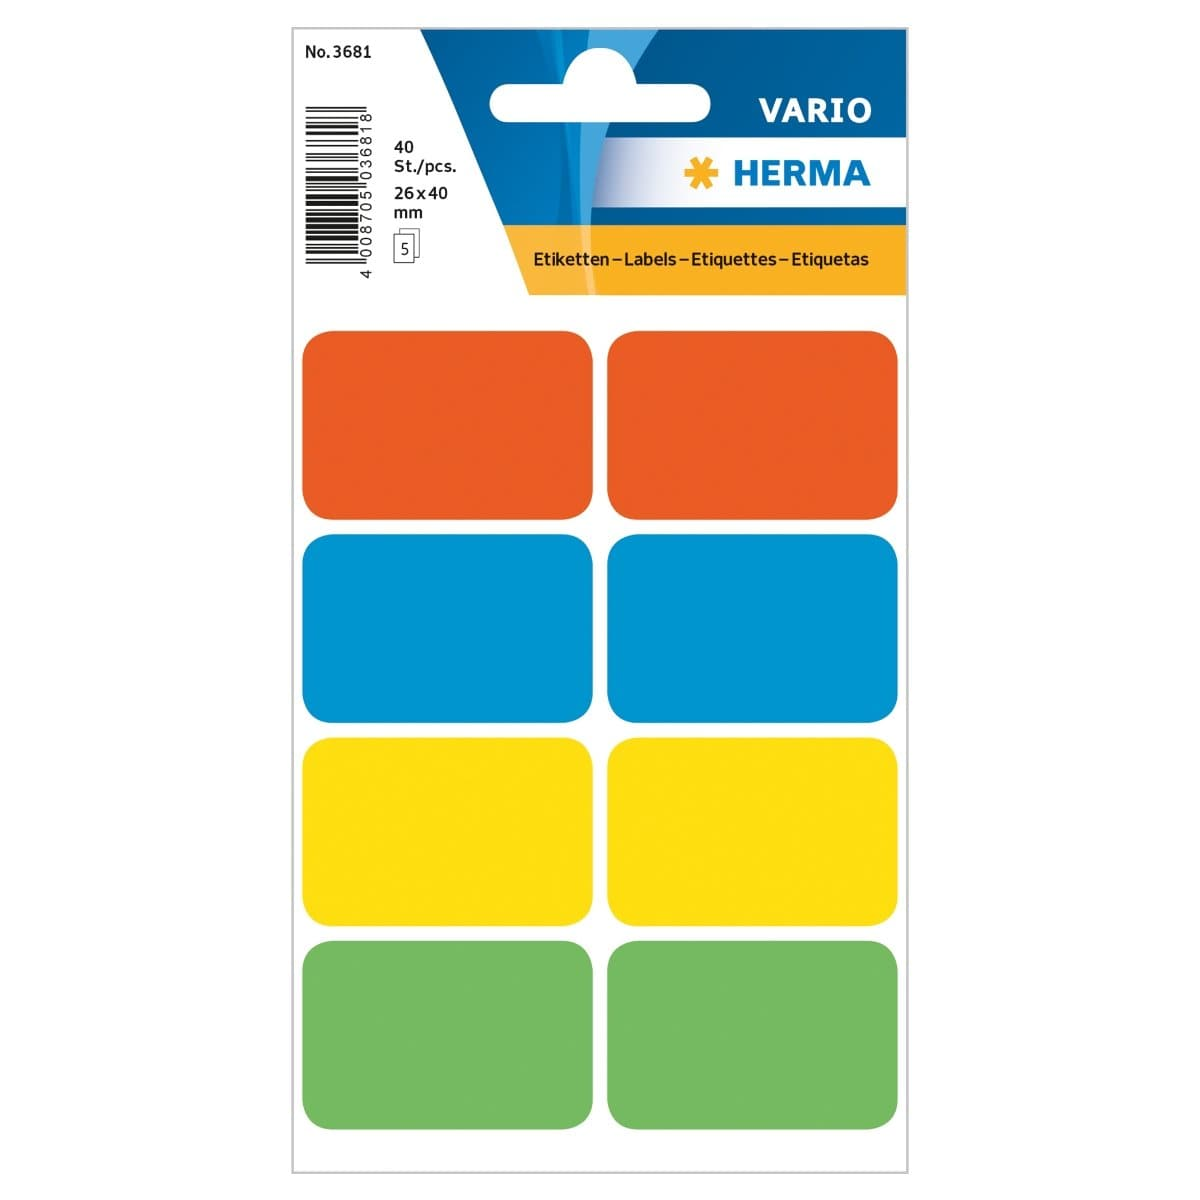 Herma Vario Sticker Labels, 26 x 40 mm, 40/pack, Assorted Colors